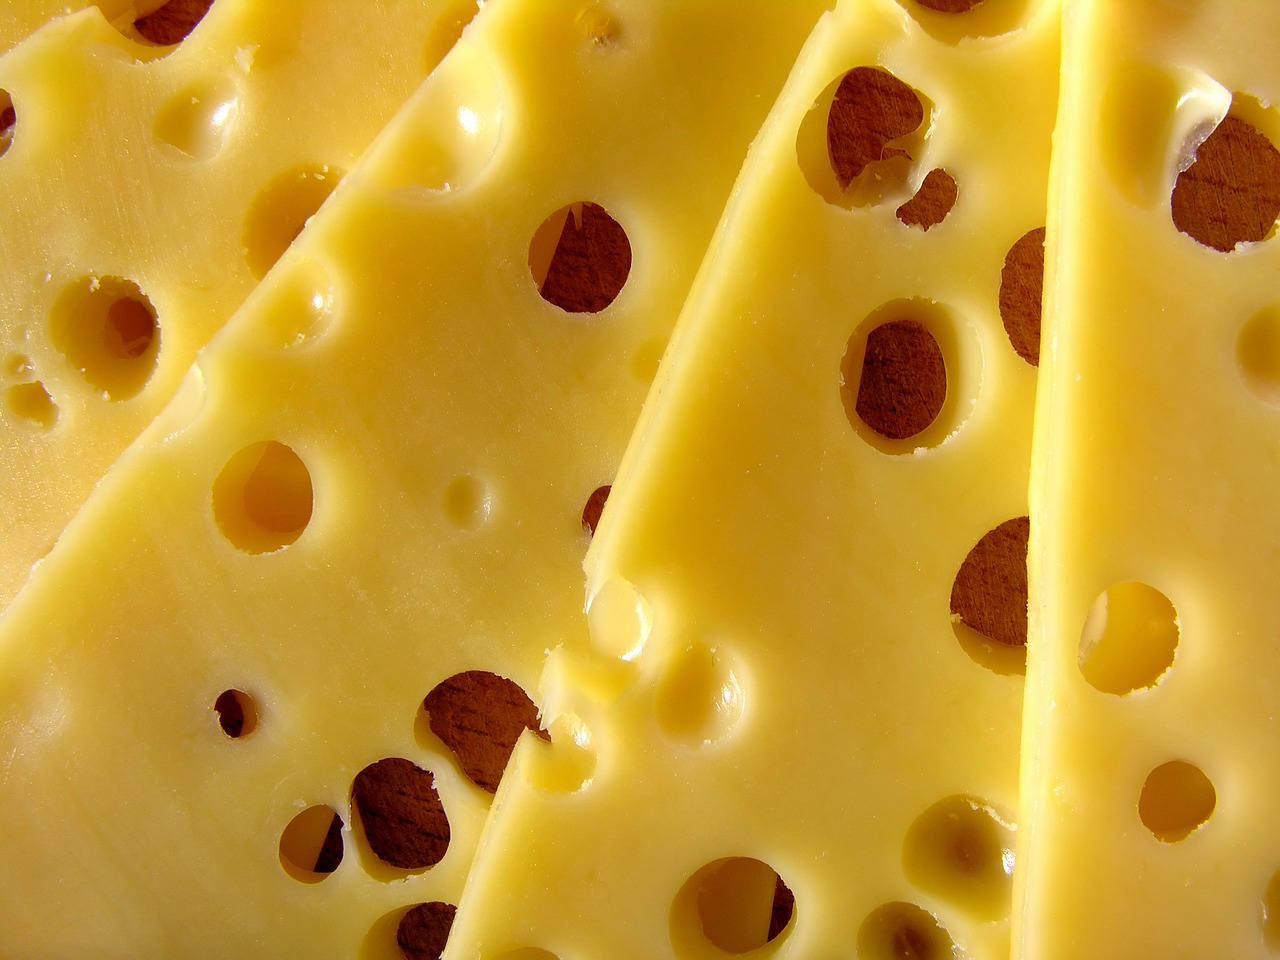 This acts as a carrier for probiotics. Eating cheese can help to boost your immune system.